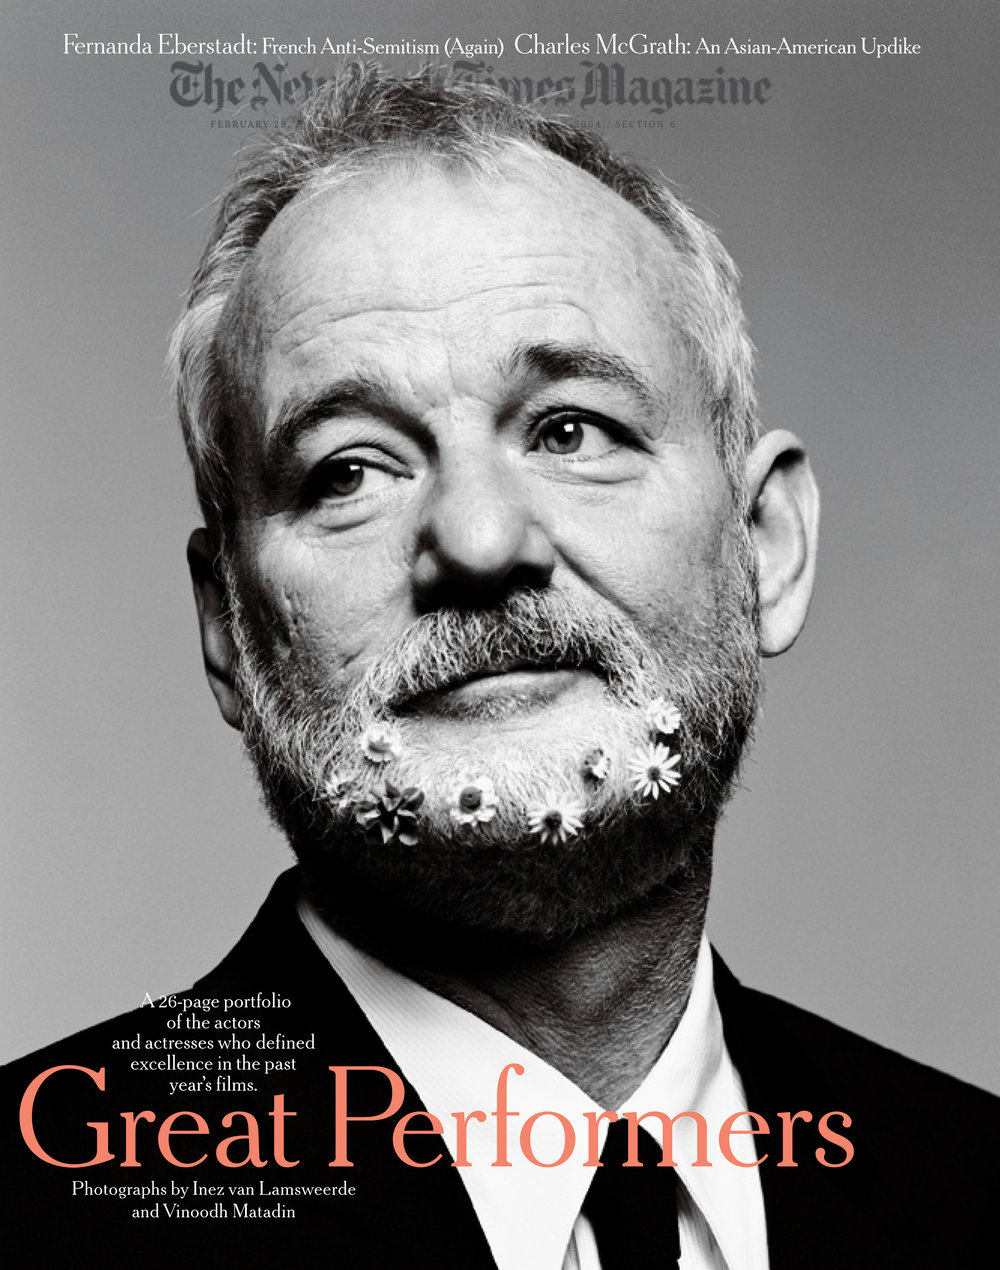 OSCARS04.02.29.04.Oscars-Bill Murray-Cover.jpg